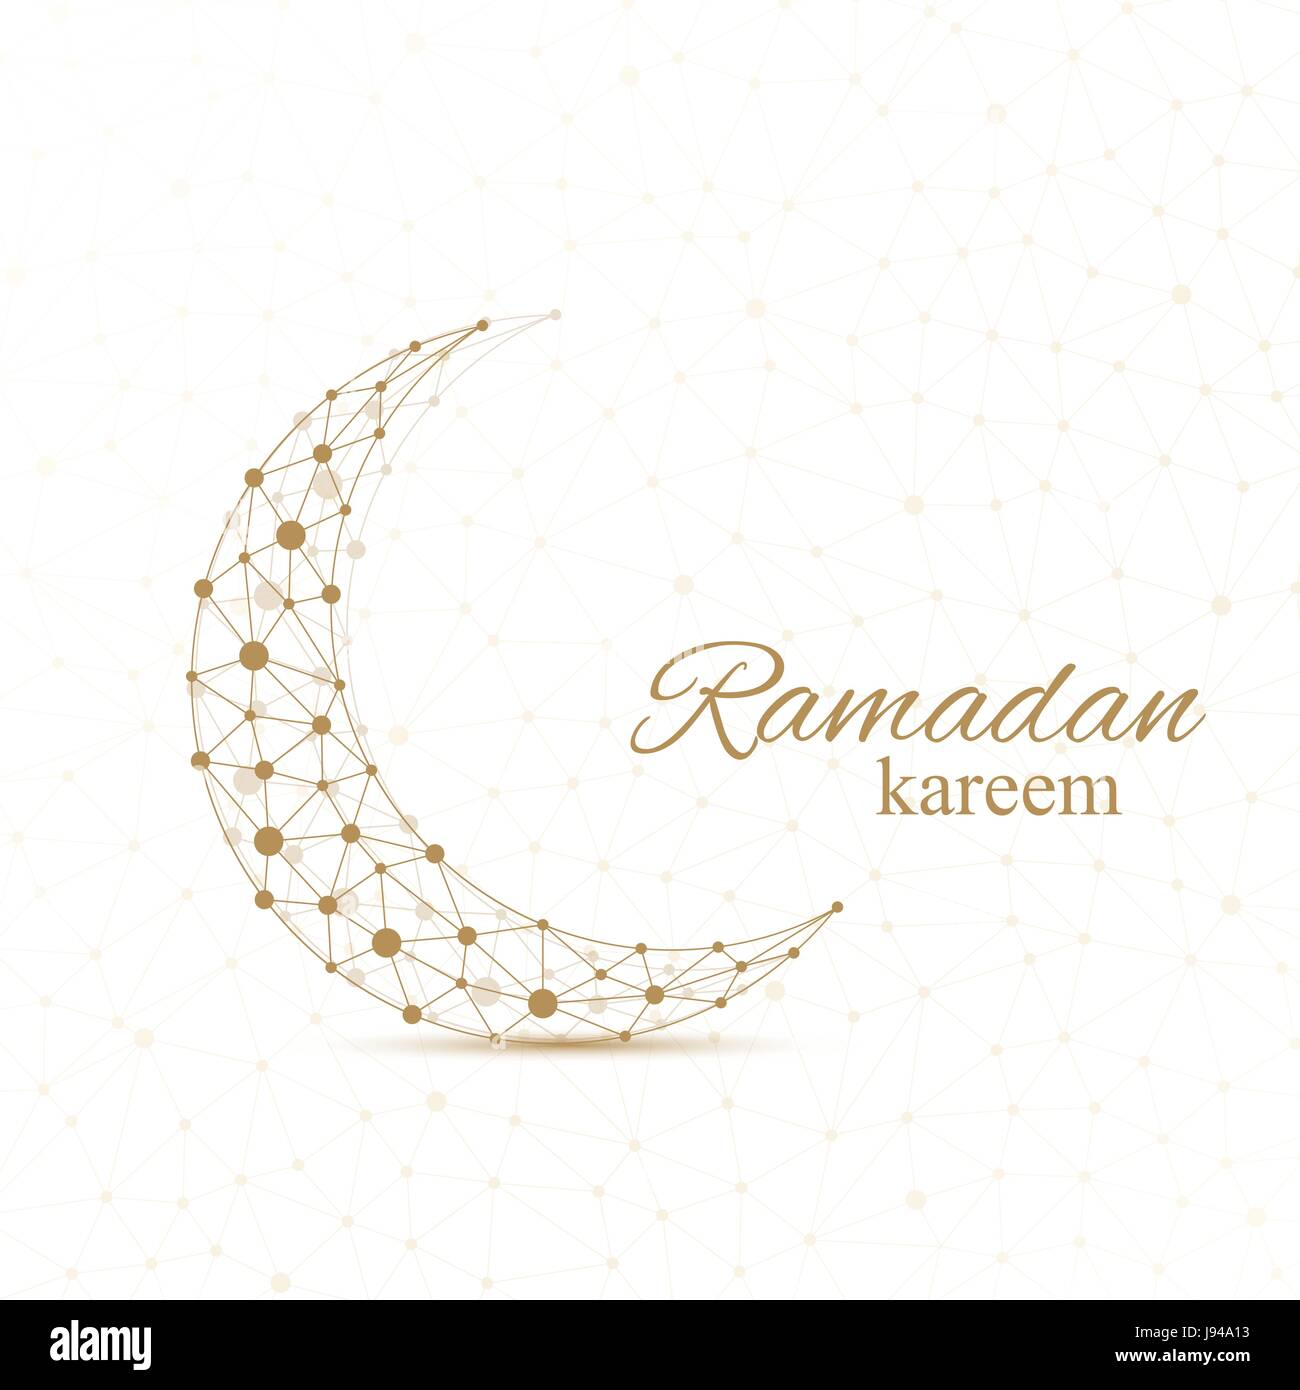 Ramadan greetings background luxury gold solutions design golden ramadan greetings background luxury gold solutions design golden moon made from connected line and dots ramadan kareem vector illustration kristyandbryce Image collections